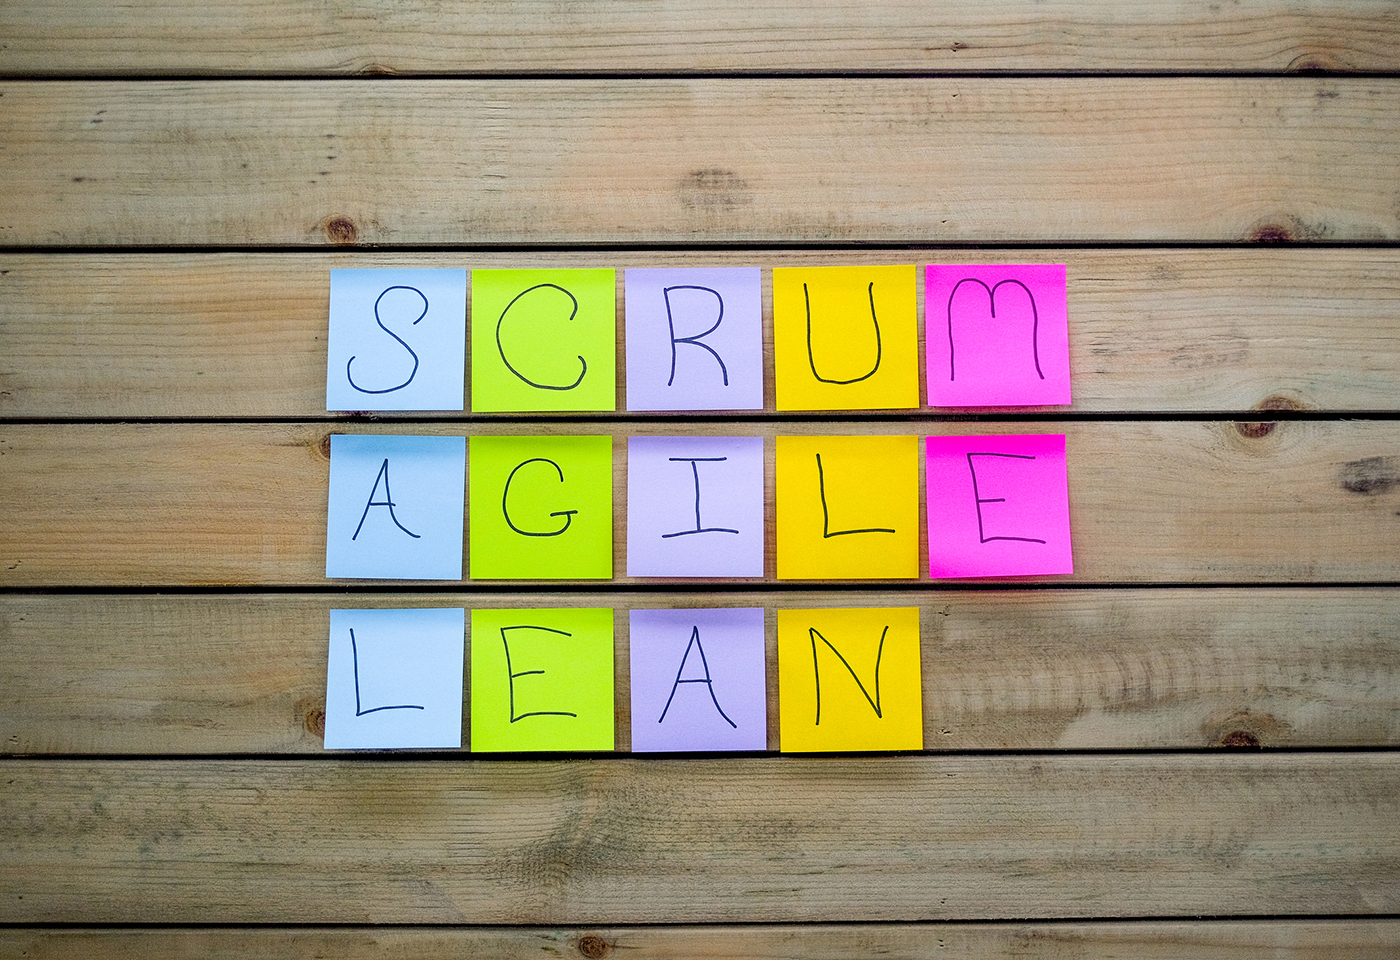 Scrum Agile and LEan written on colourful post it notes